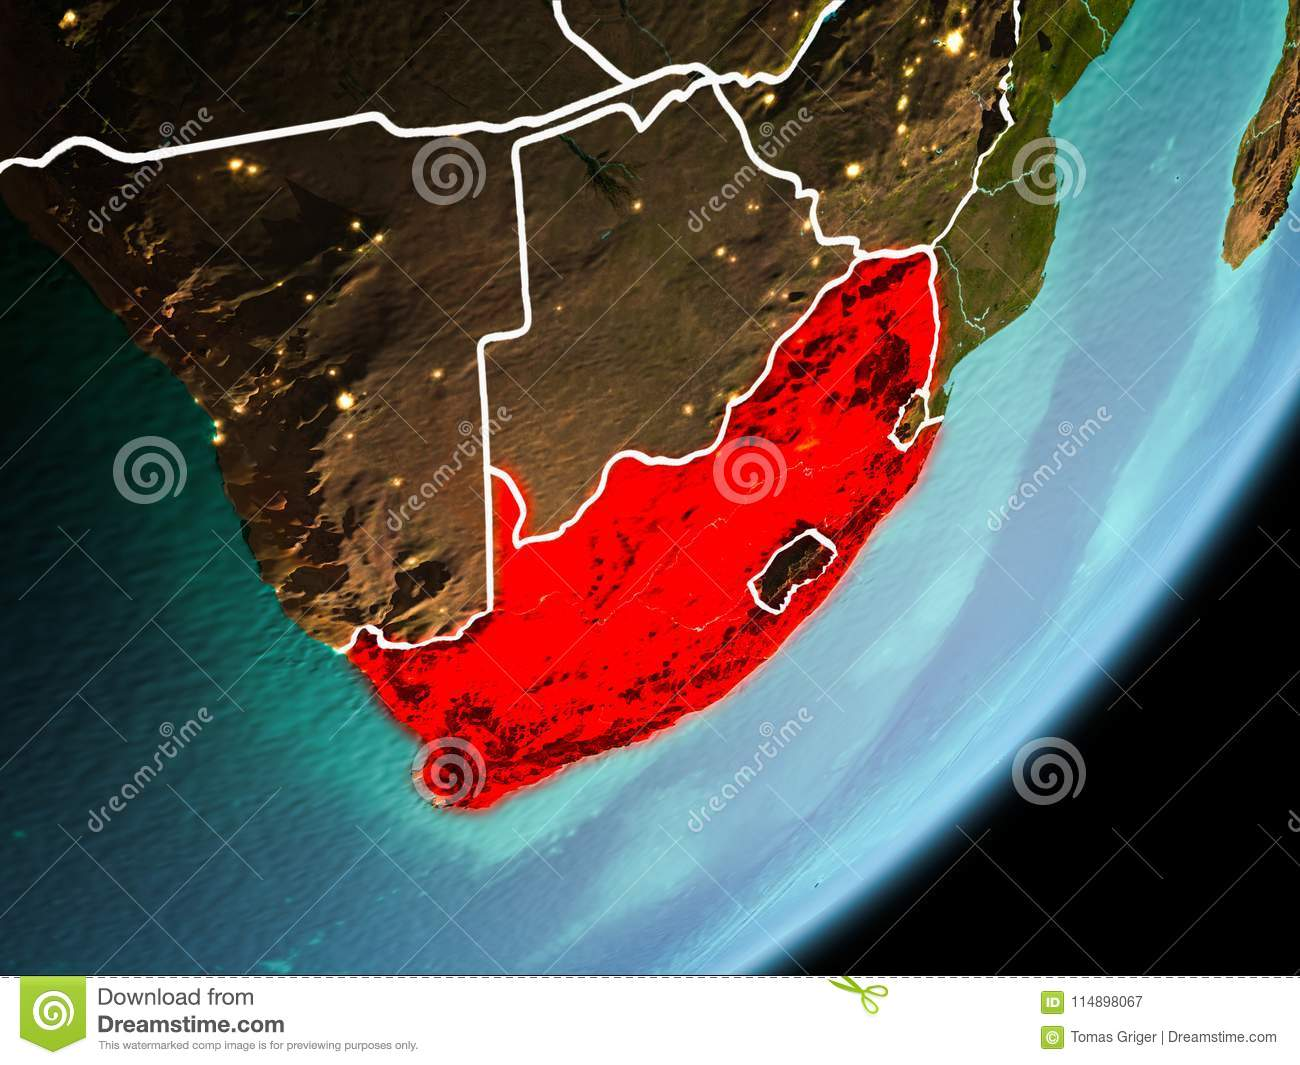 Orbit view of South Africa